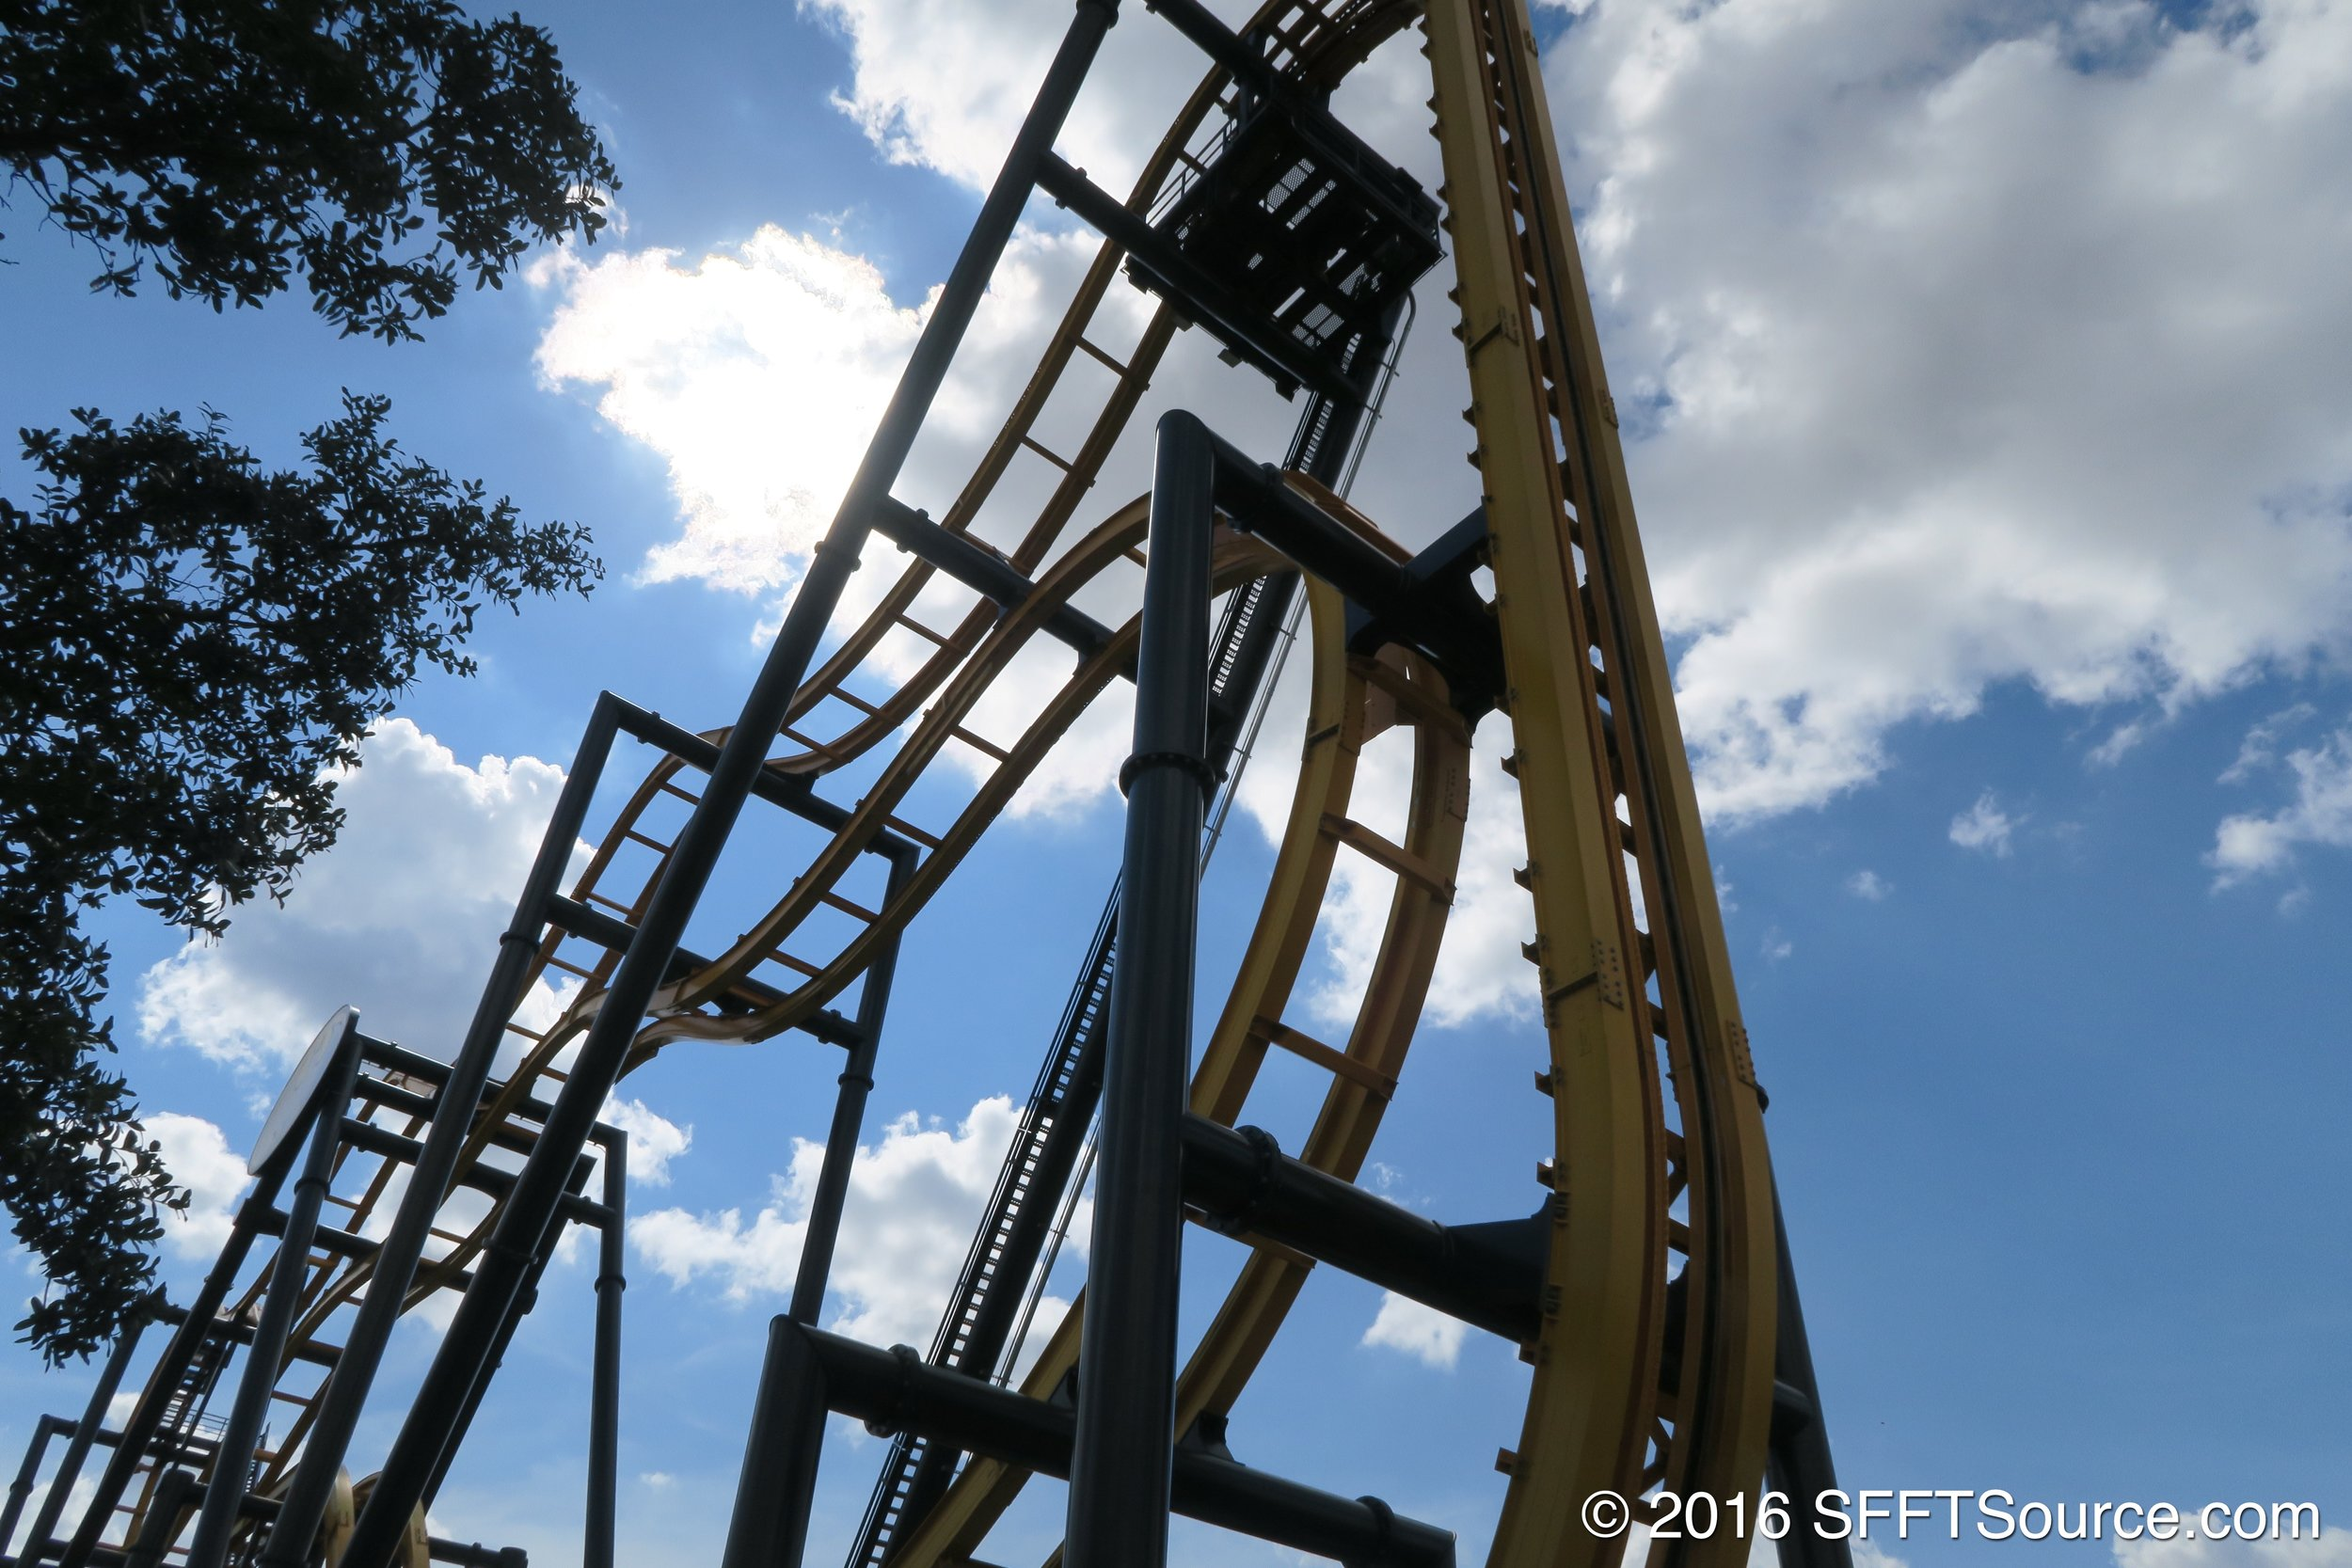 Riders ascend a vertical lift to the top.